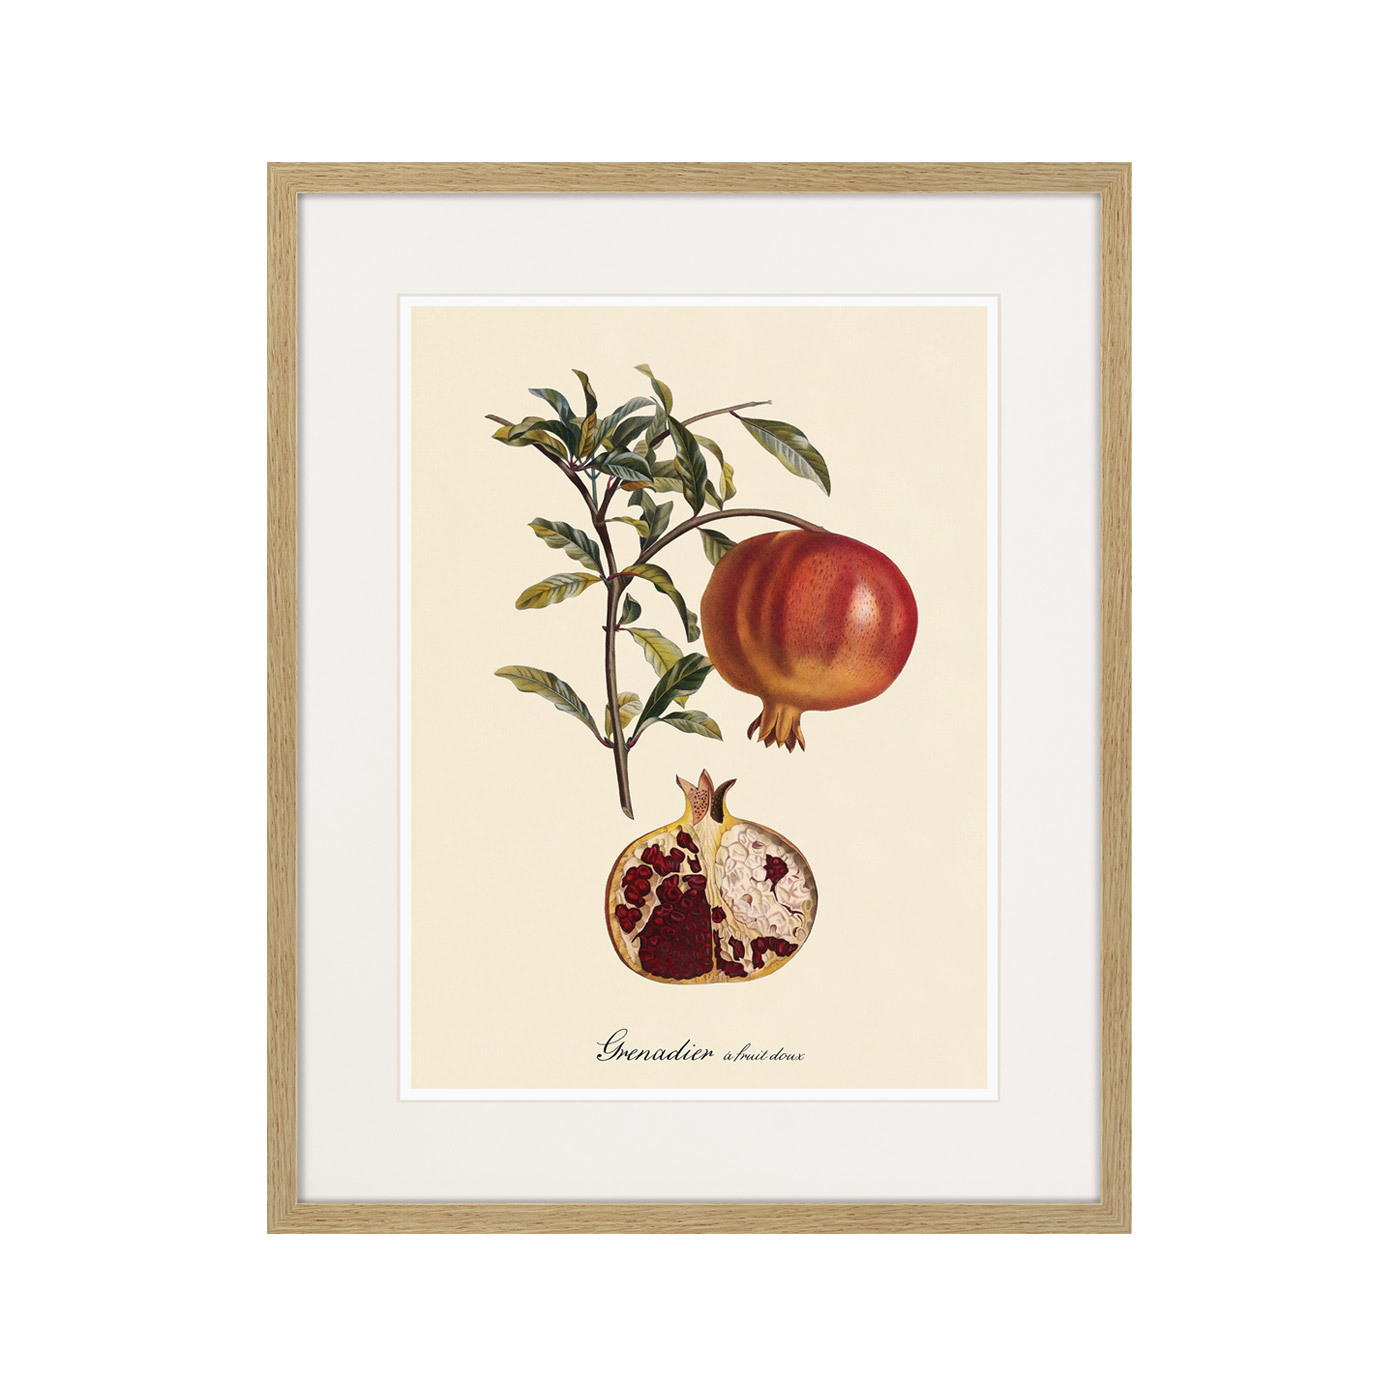 Juicy fruit lithography №7, 1870г.